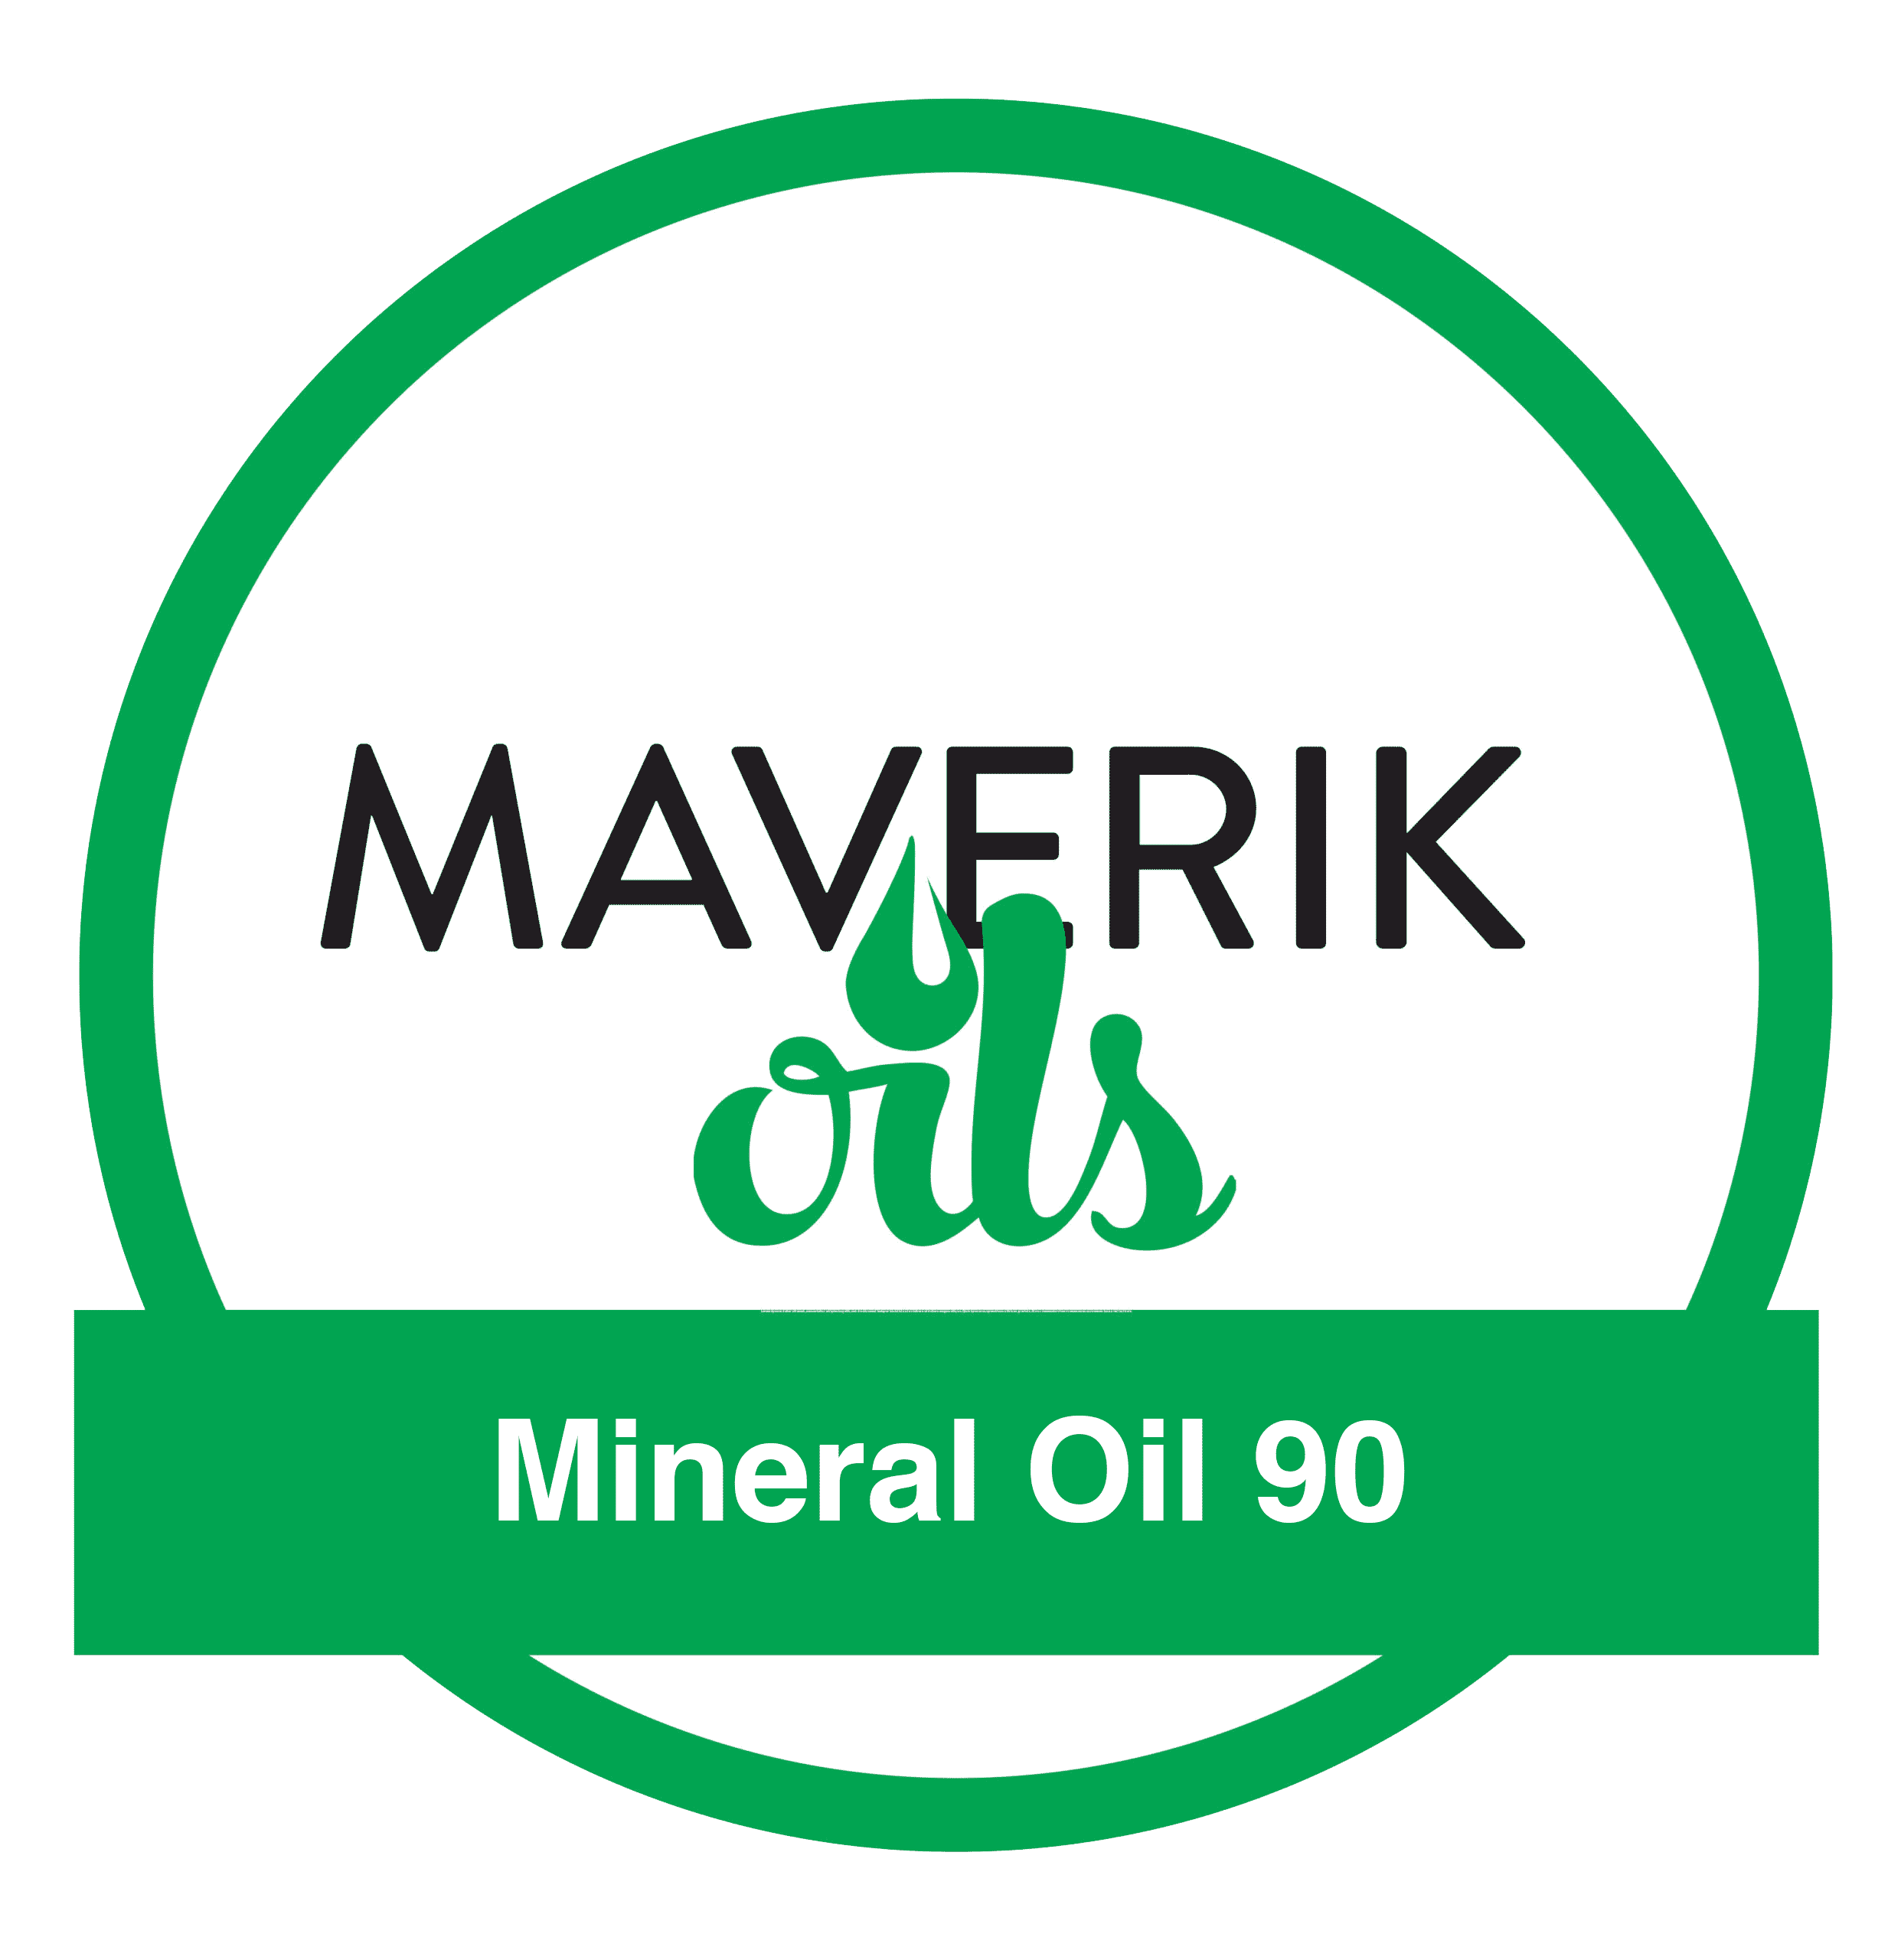 Mineral Oil 90